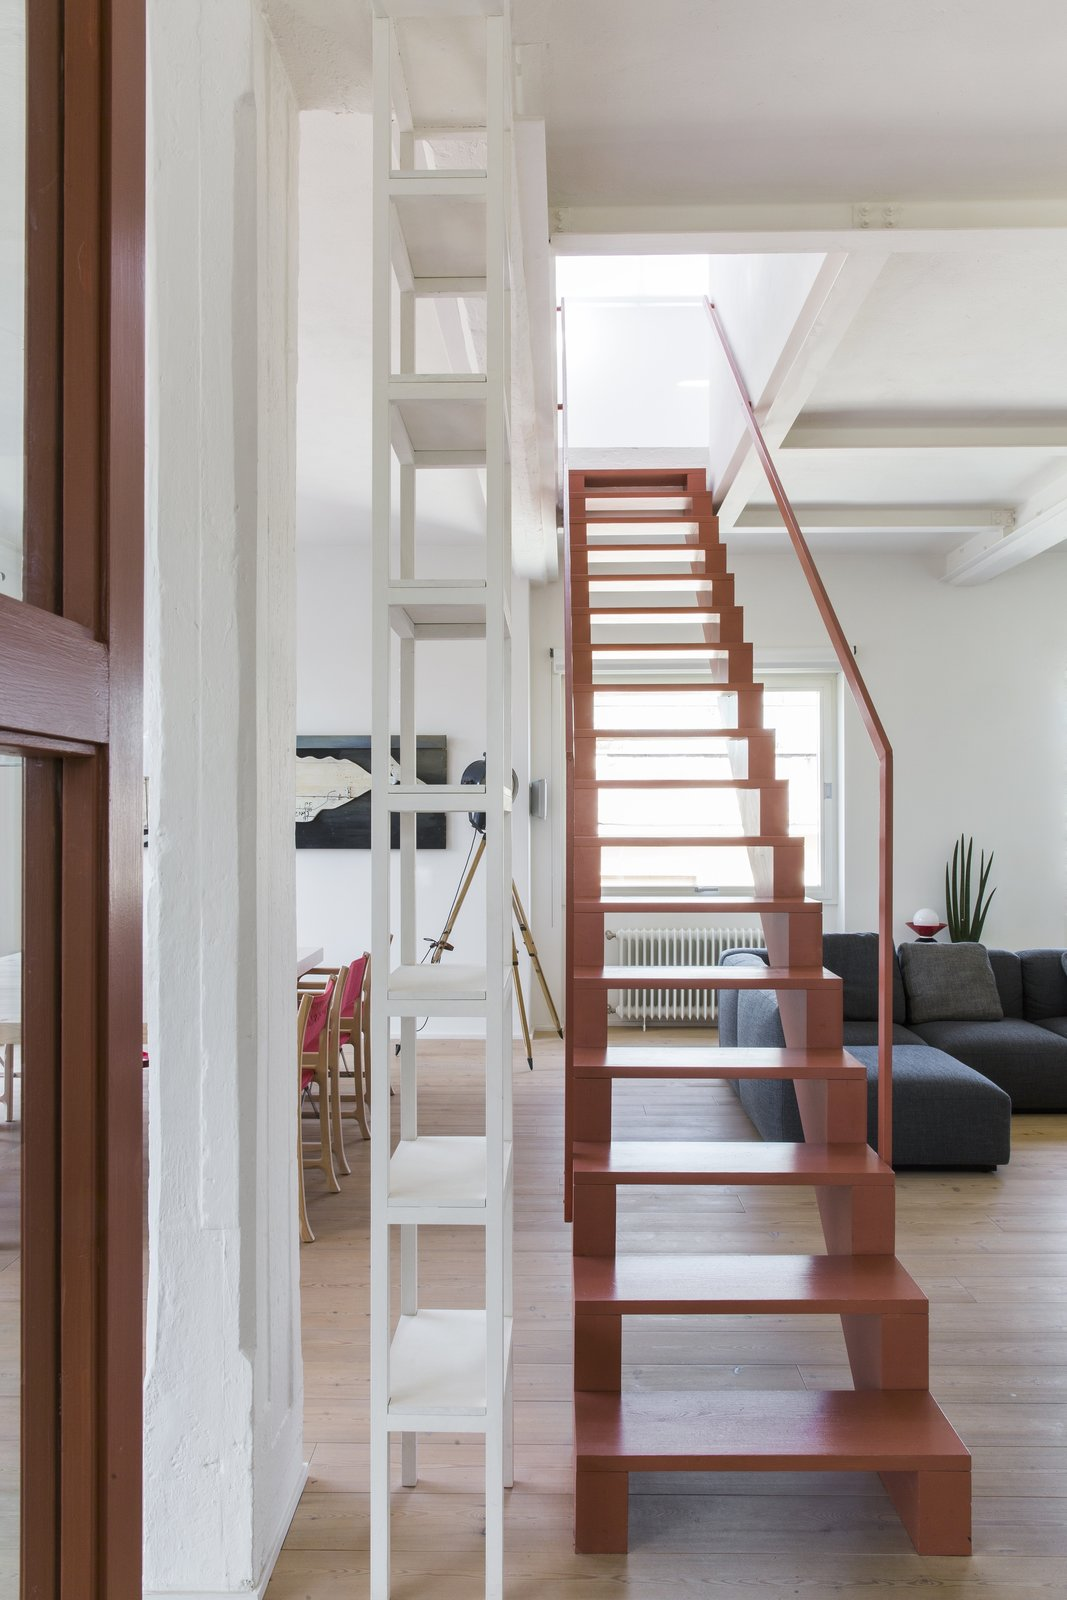 Staircase, Wood Tread, and Wood Railing The pink staircase links the common areas in the lower level with the master bedroom above.    Photo 6 of 14 in A Pink Staircase Dominates the Revival of This Roman Apartment